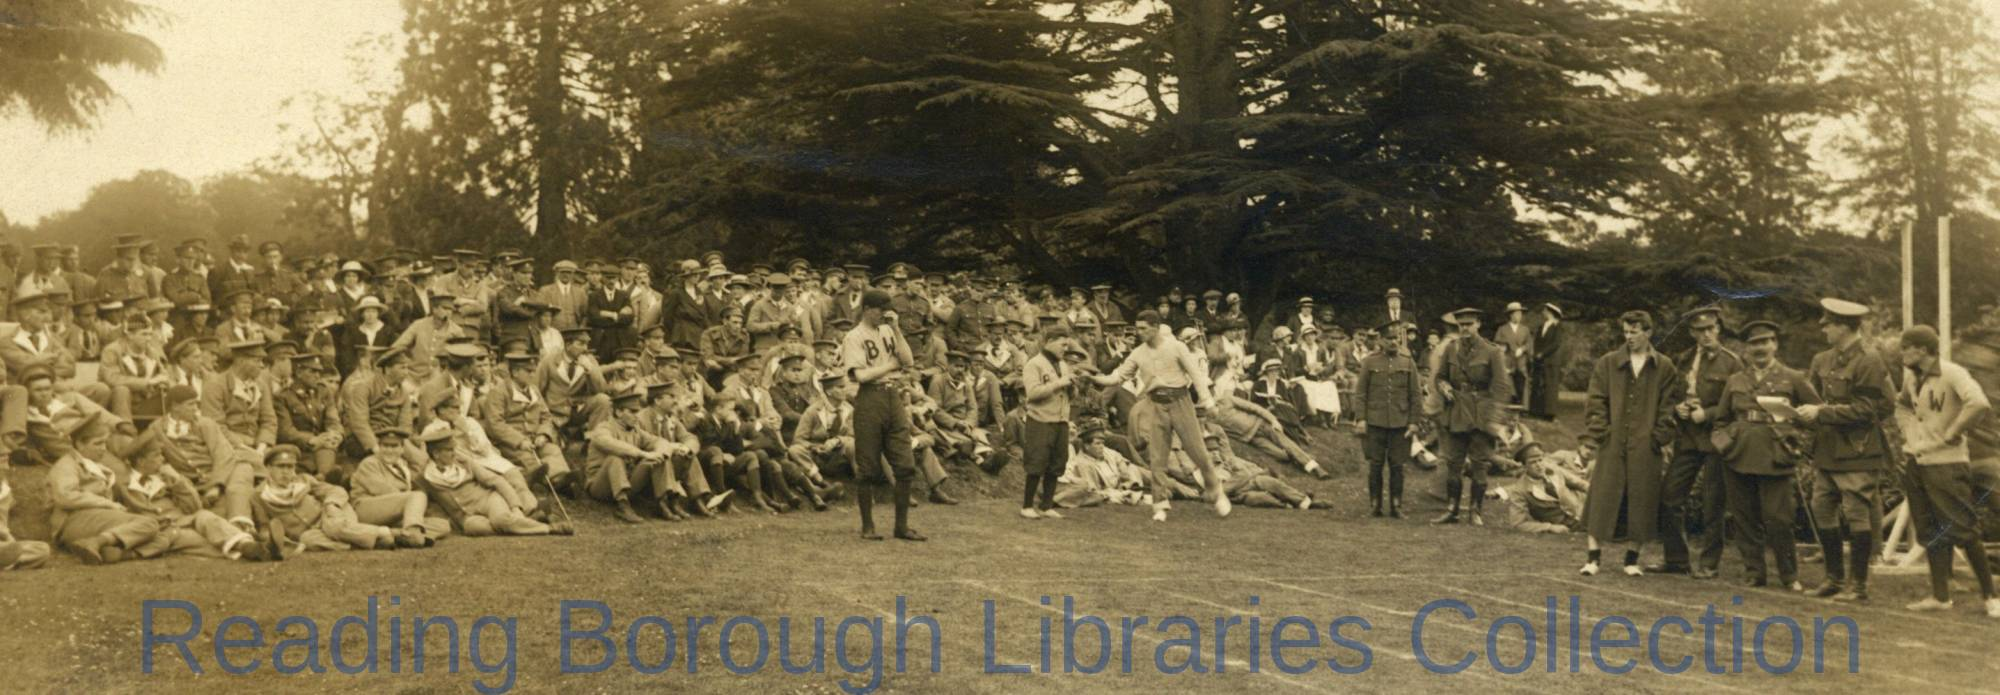 Celebrations on Dominion Day, Canadian Convalescent Hospital, Bearwood, Reading, 1st July 1916.